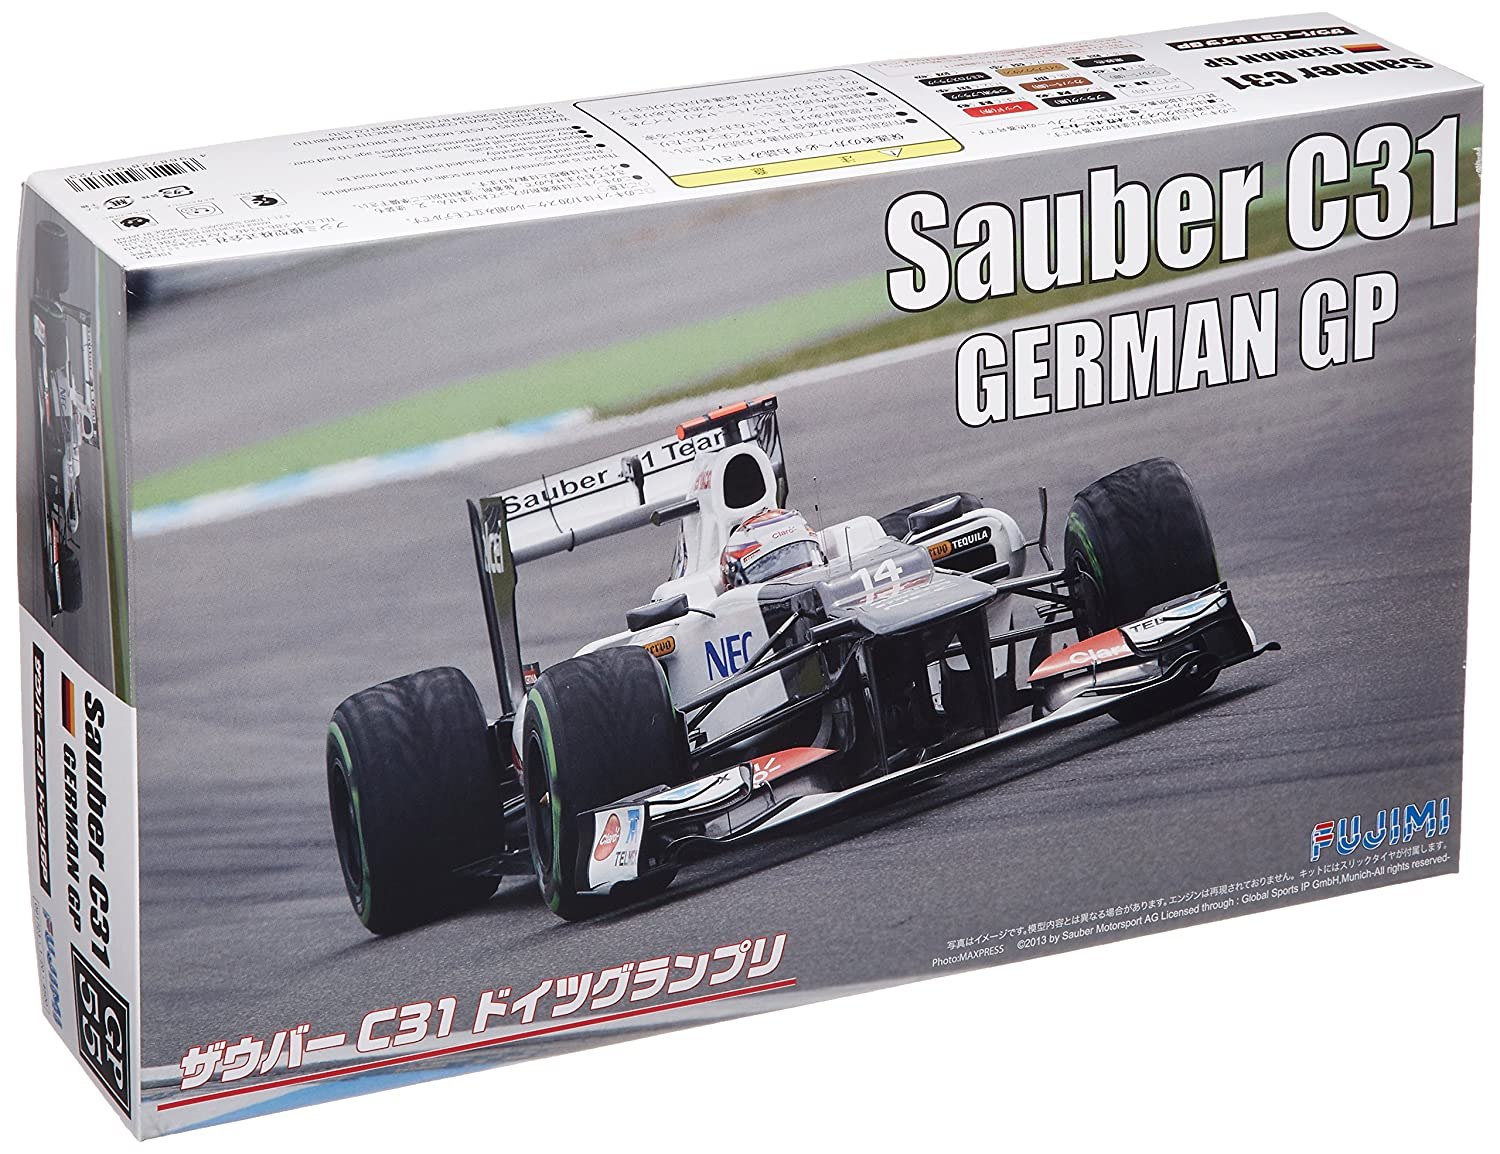 1/20 Grand Prix Series No.55 Sauber C31 German GP (japan import)